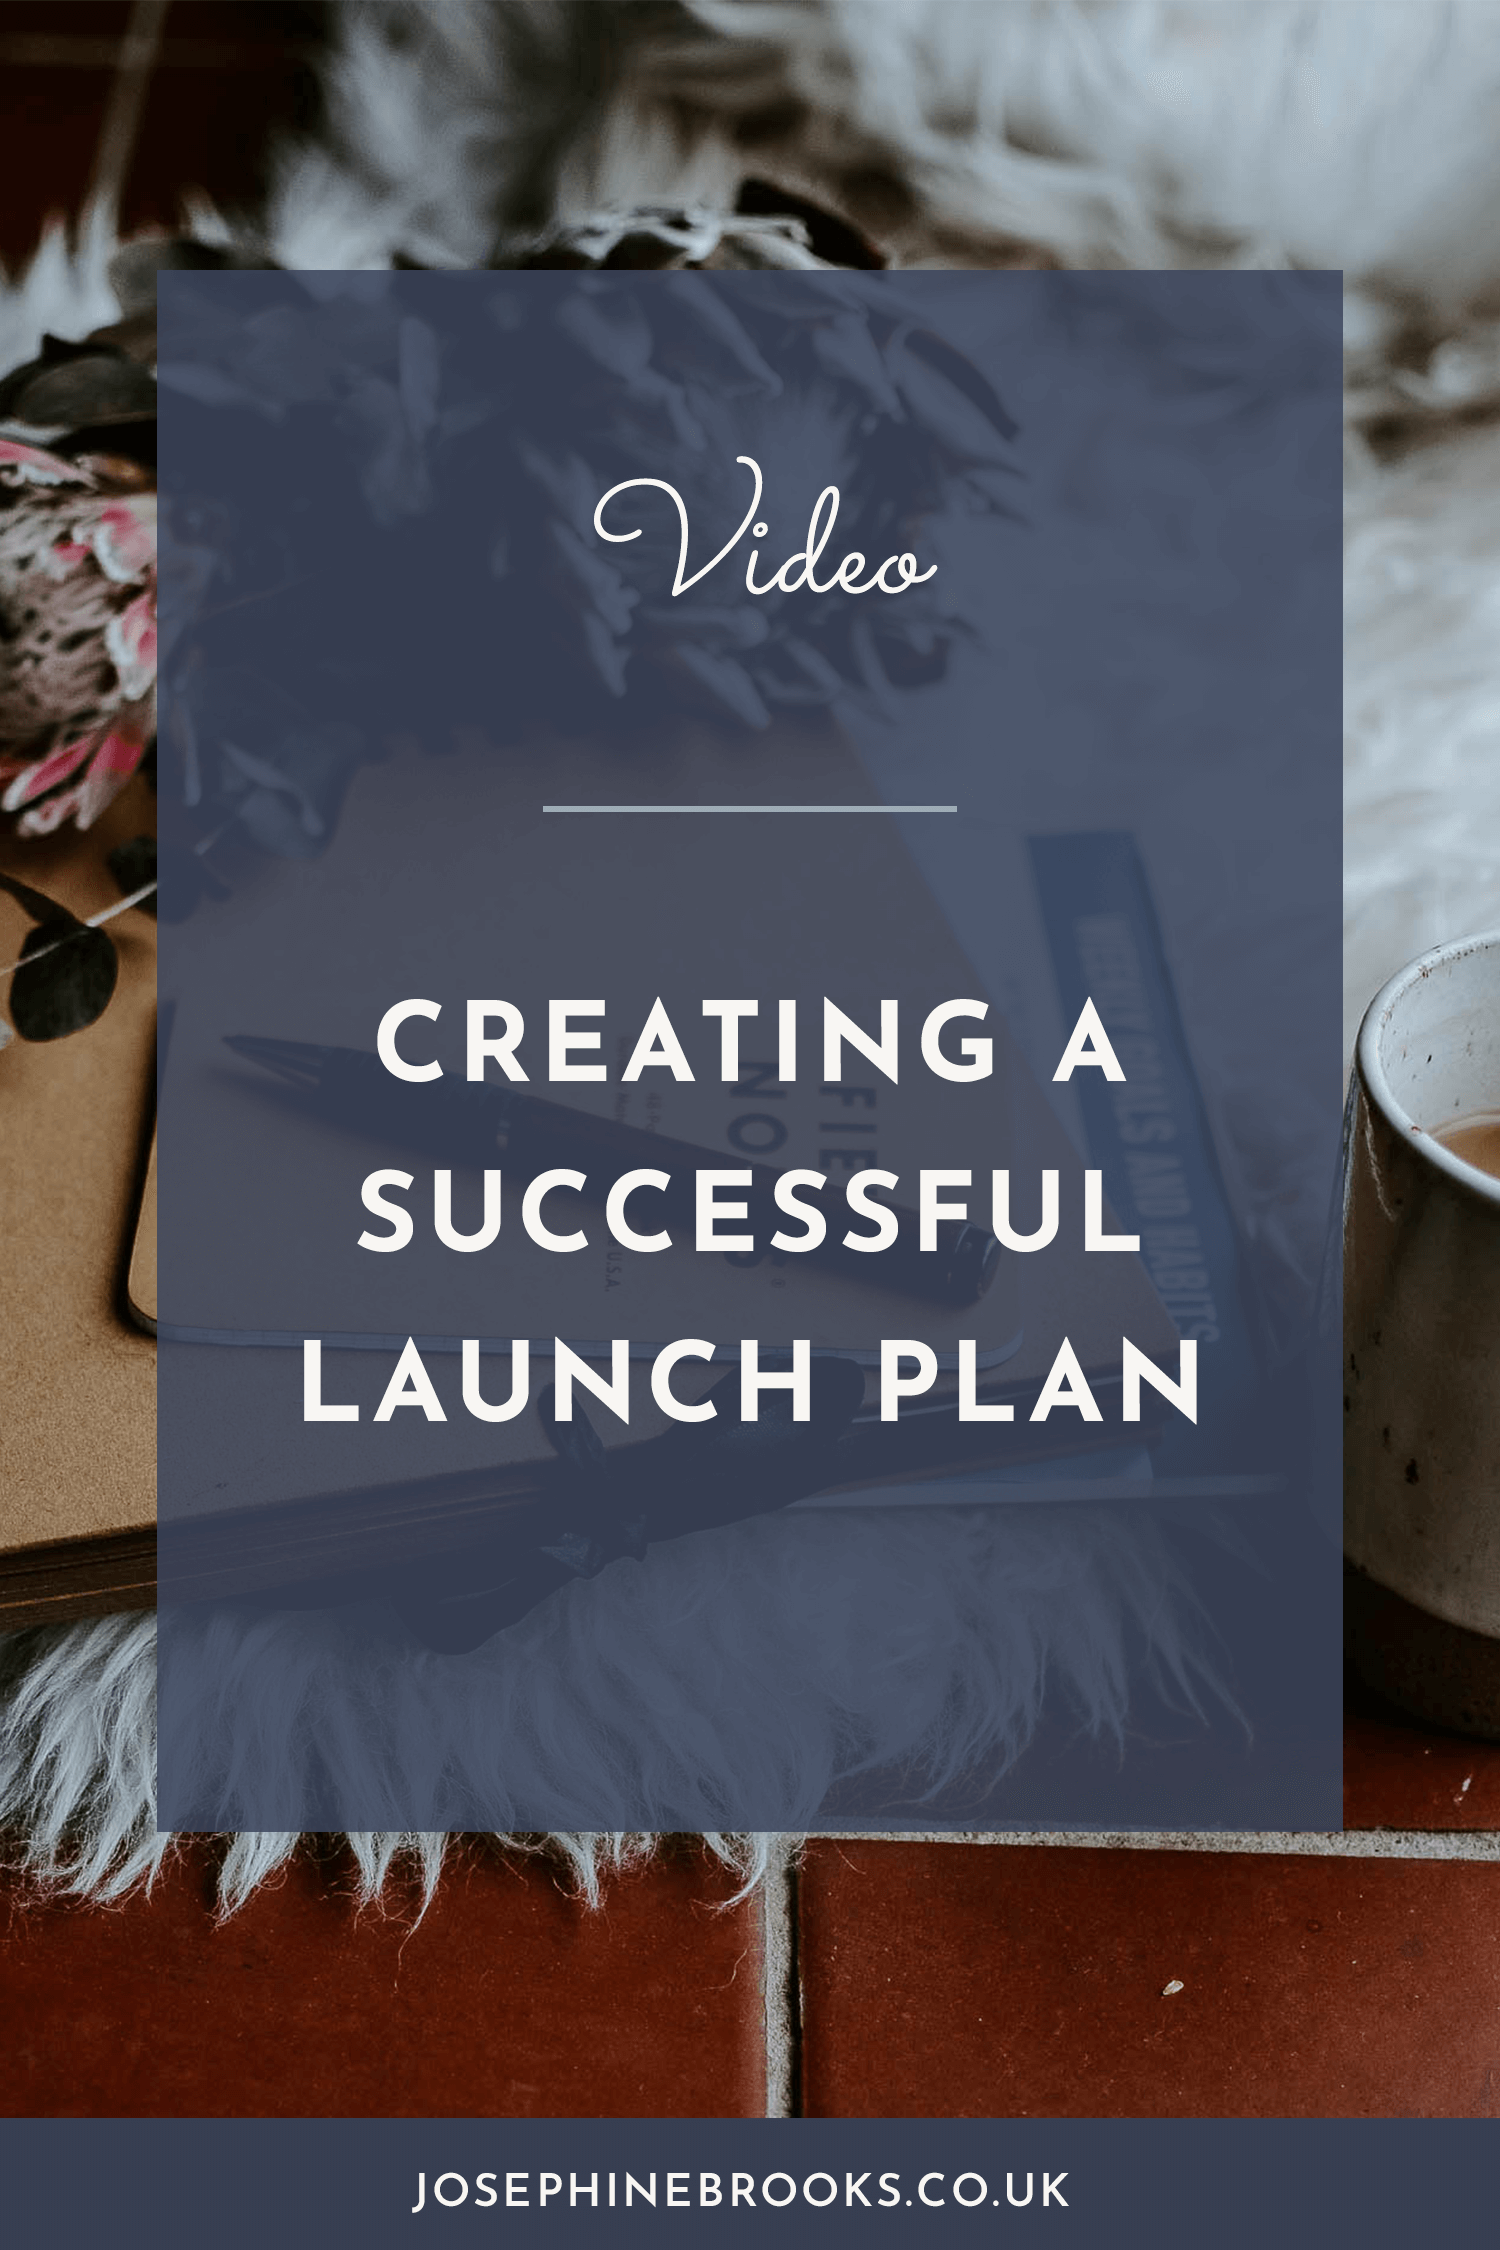 Creating a successful launch plan, launching a business, launching a podcast, product launch marketing plan | Josephine Brooks